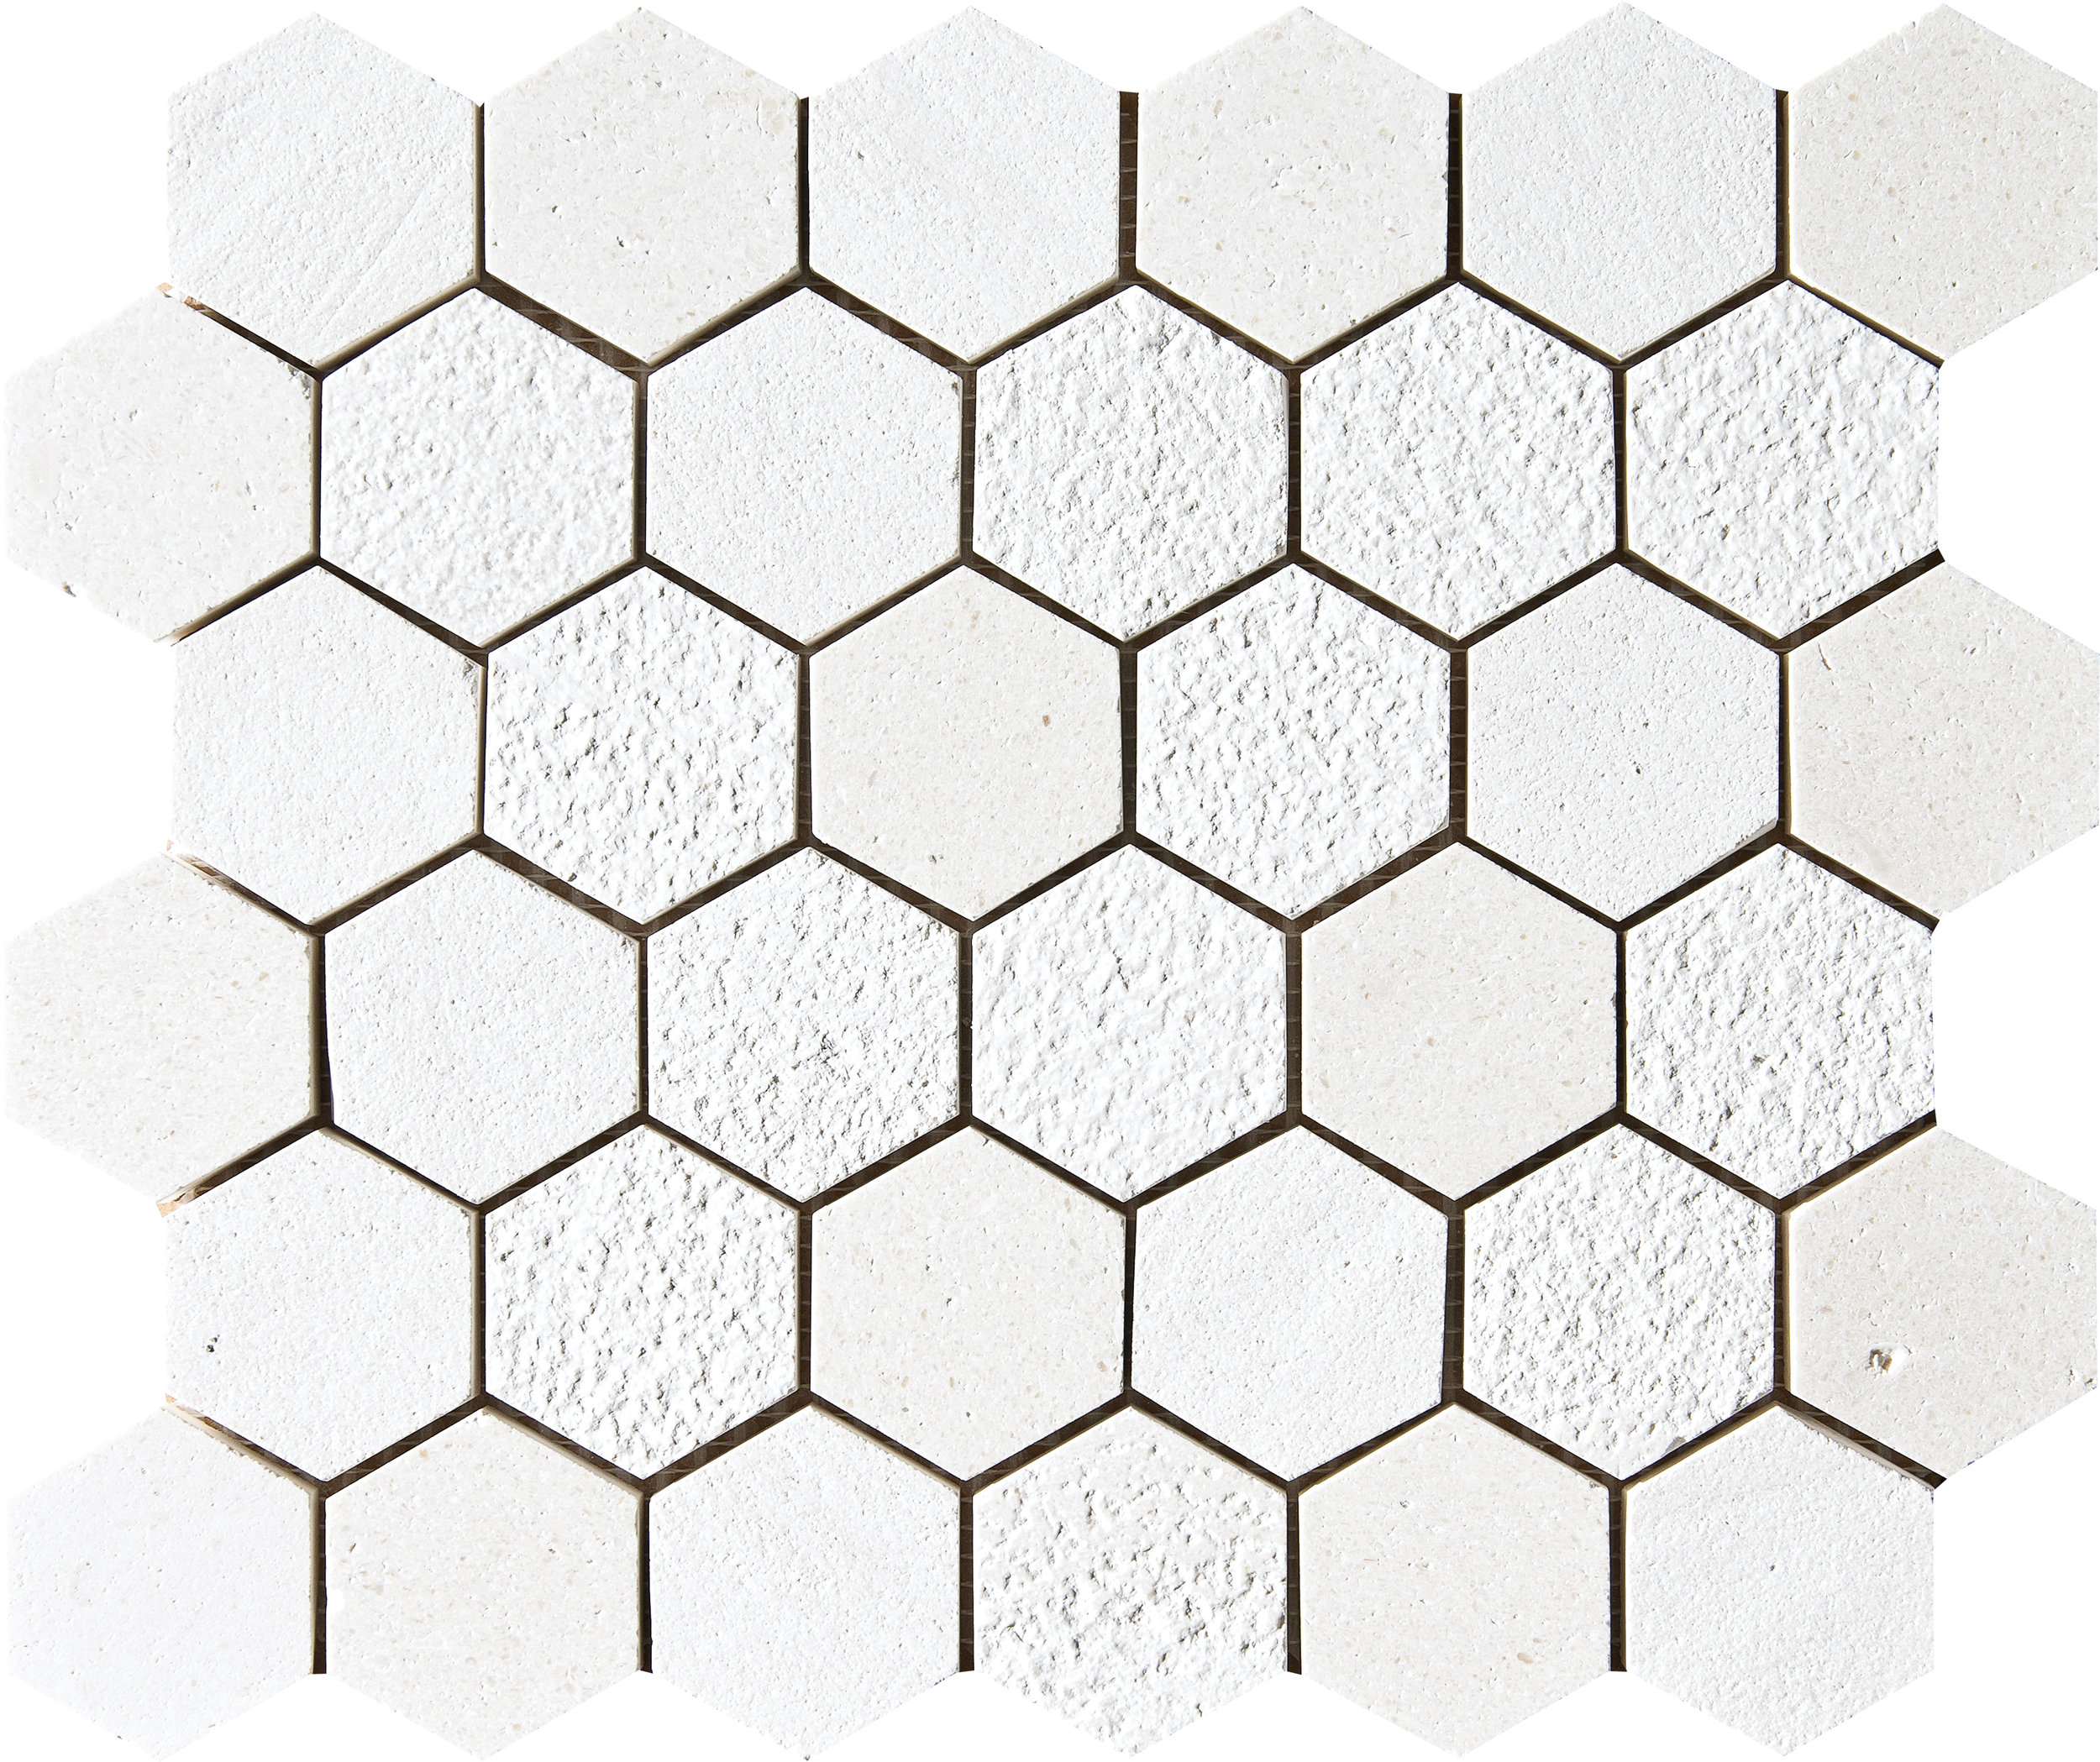 "MS01290 champagne full hexagon textured mosaic 10 3/8""x12""x3/8"" sheets"